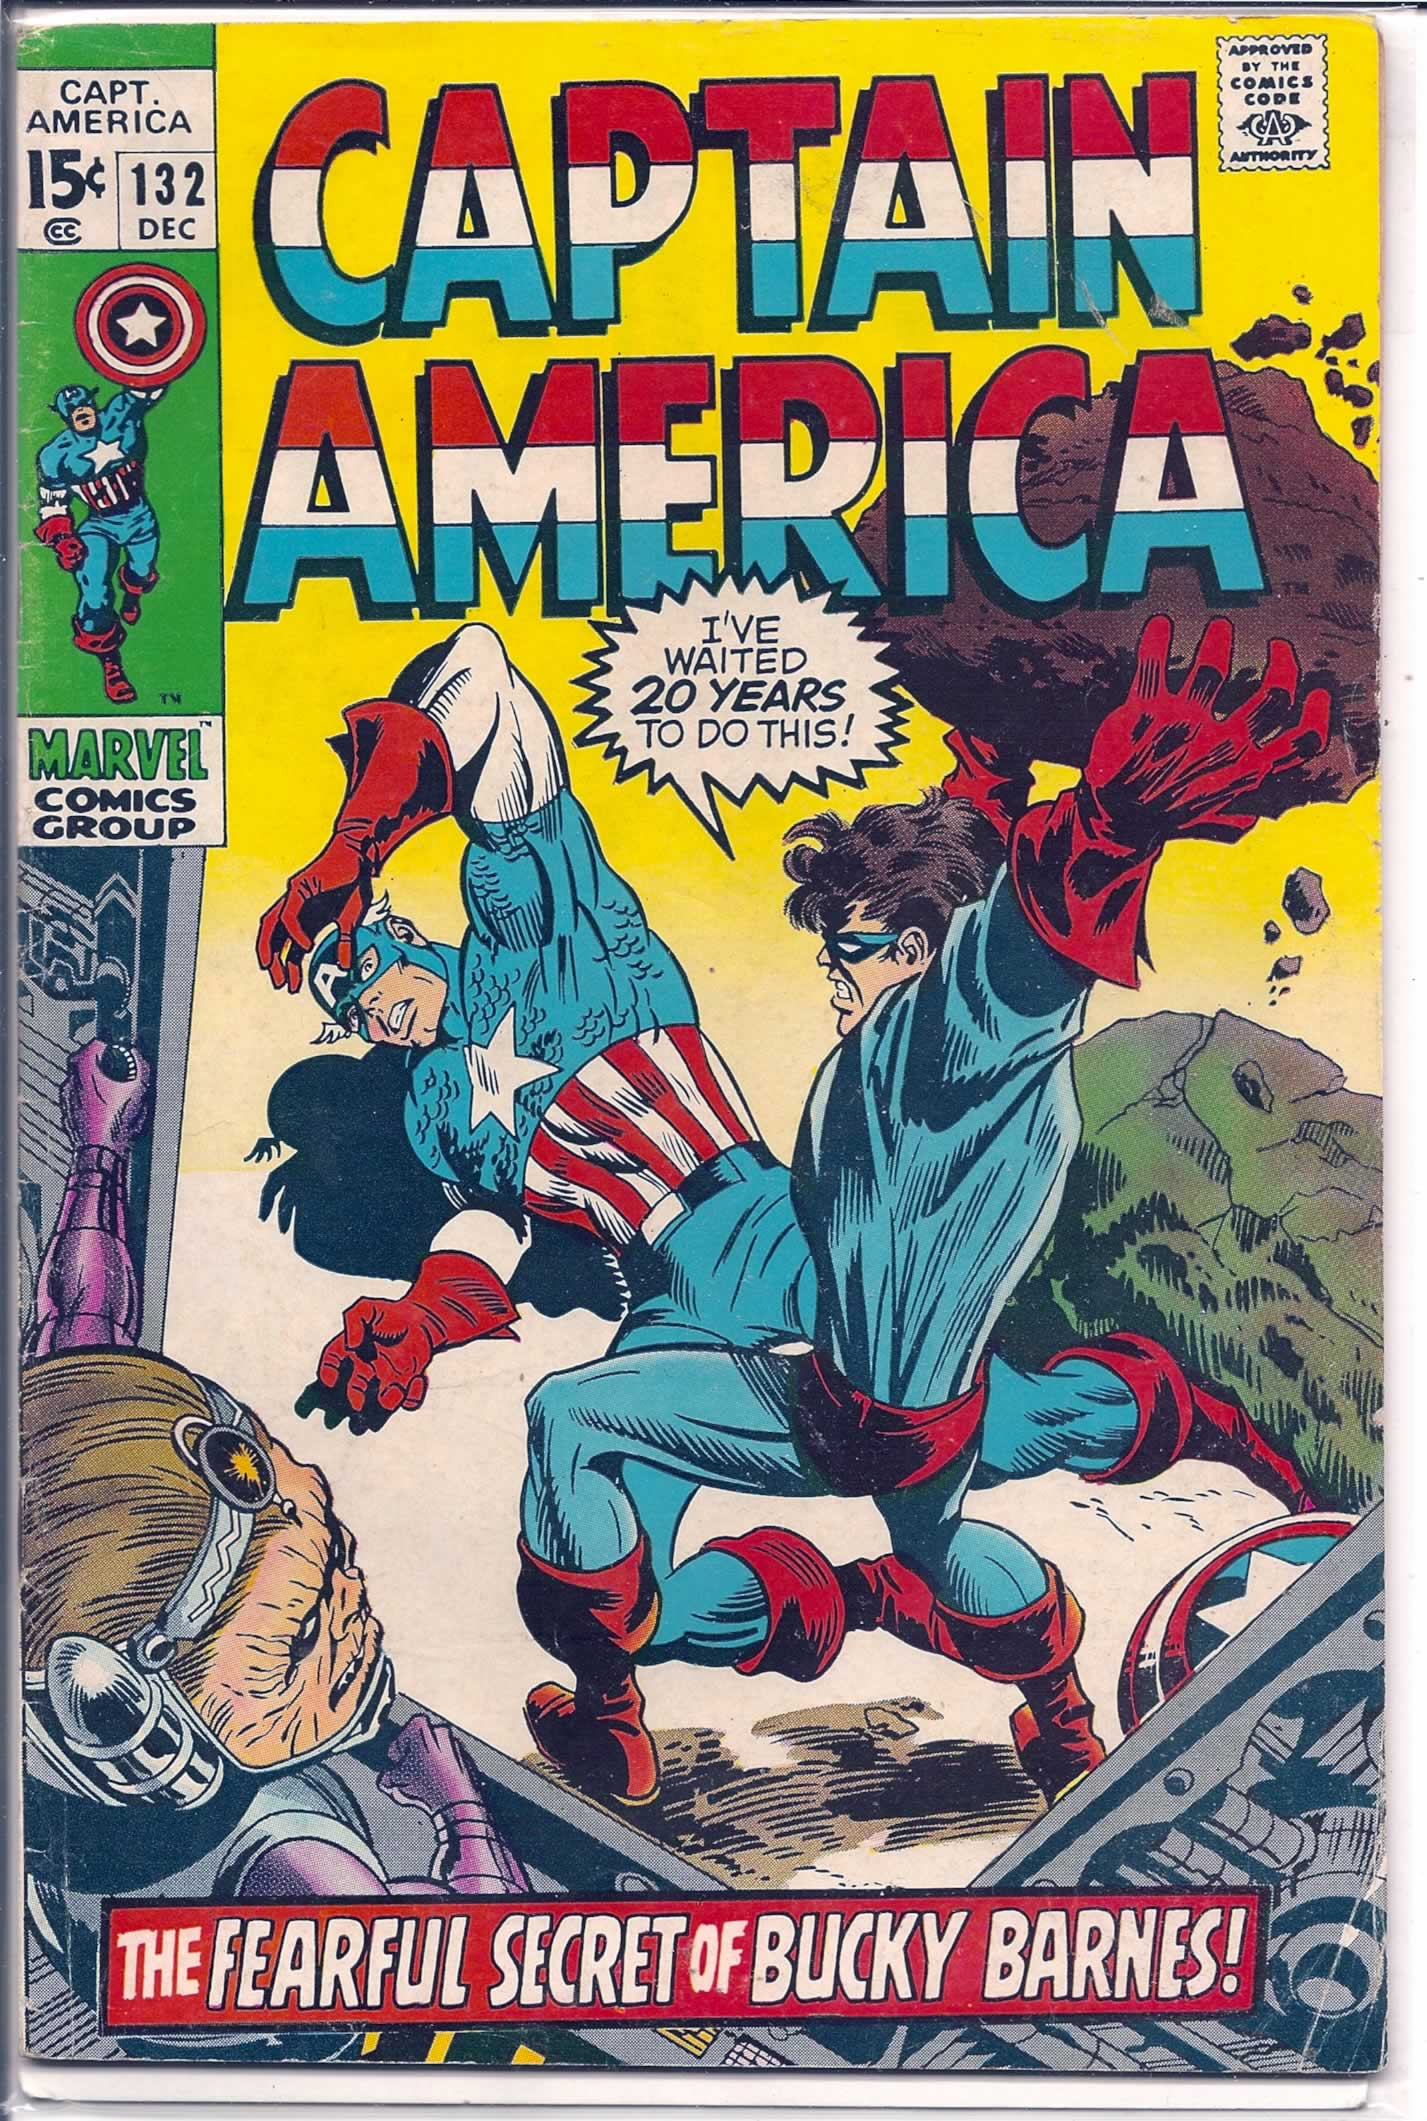 CAPTAIN AMERICA # 132, 3.0 GD/VG